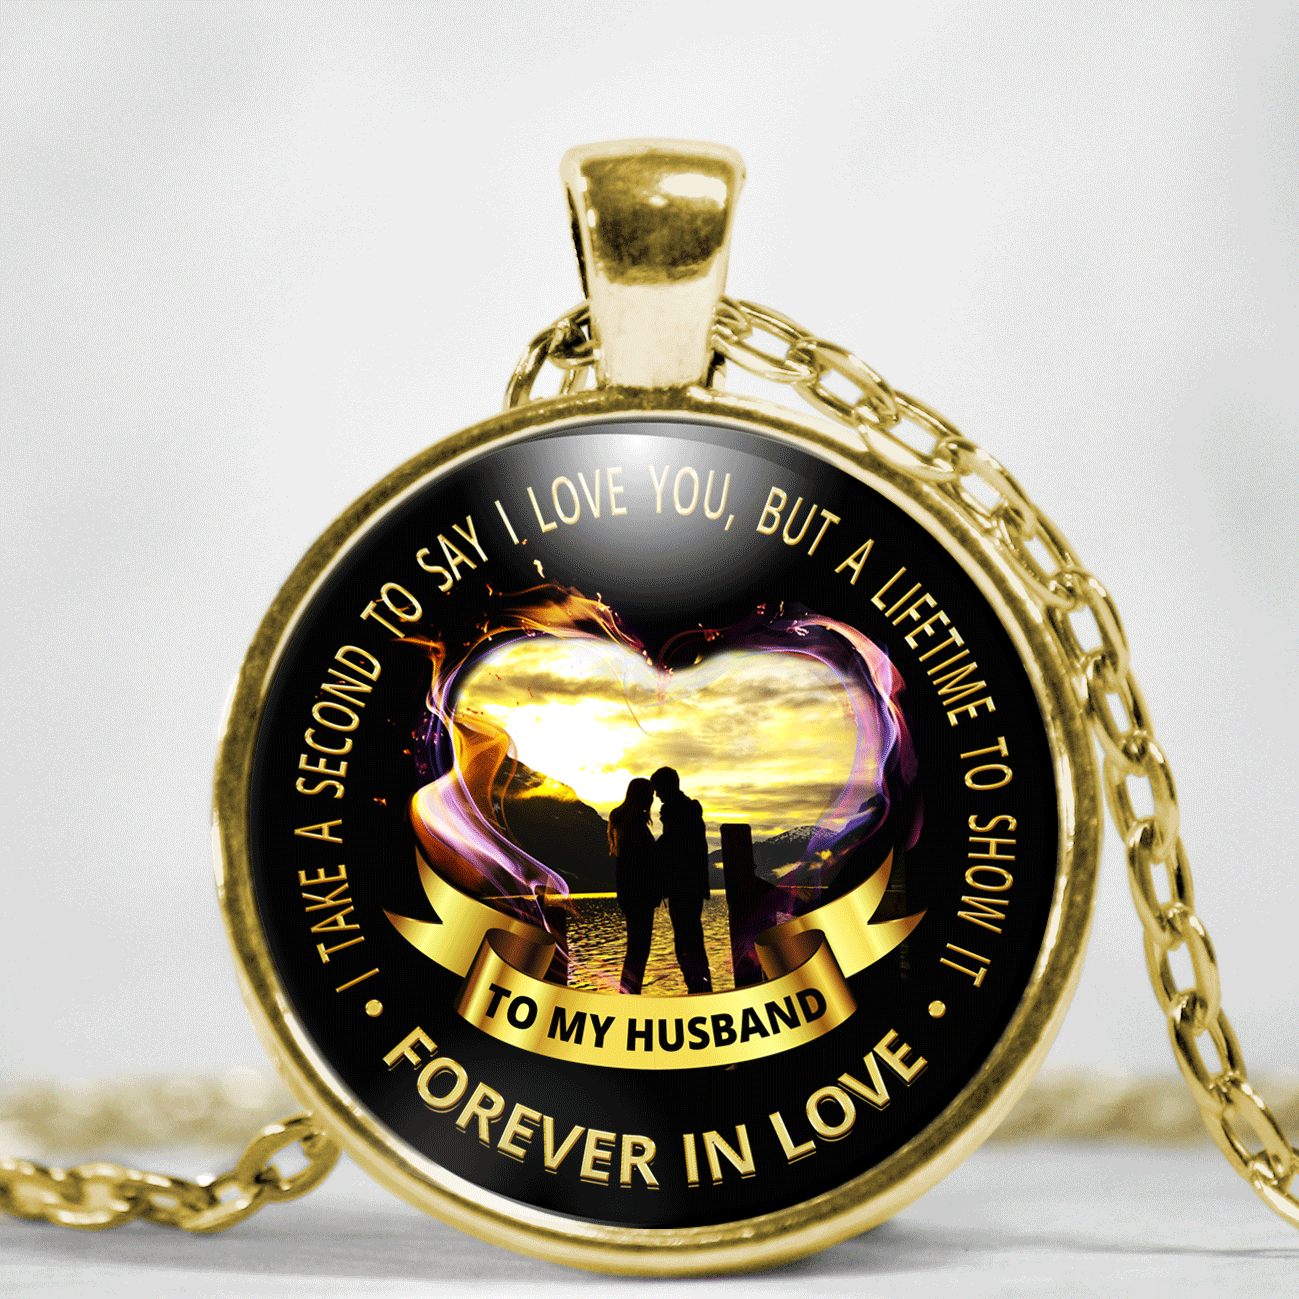 To My Husband Forever In Love Necklace